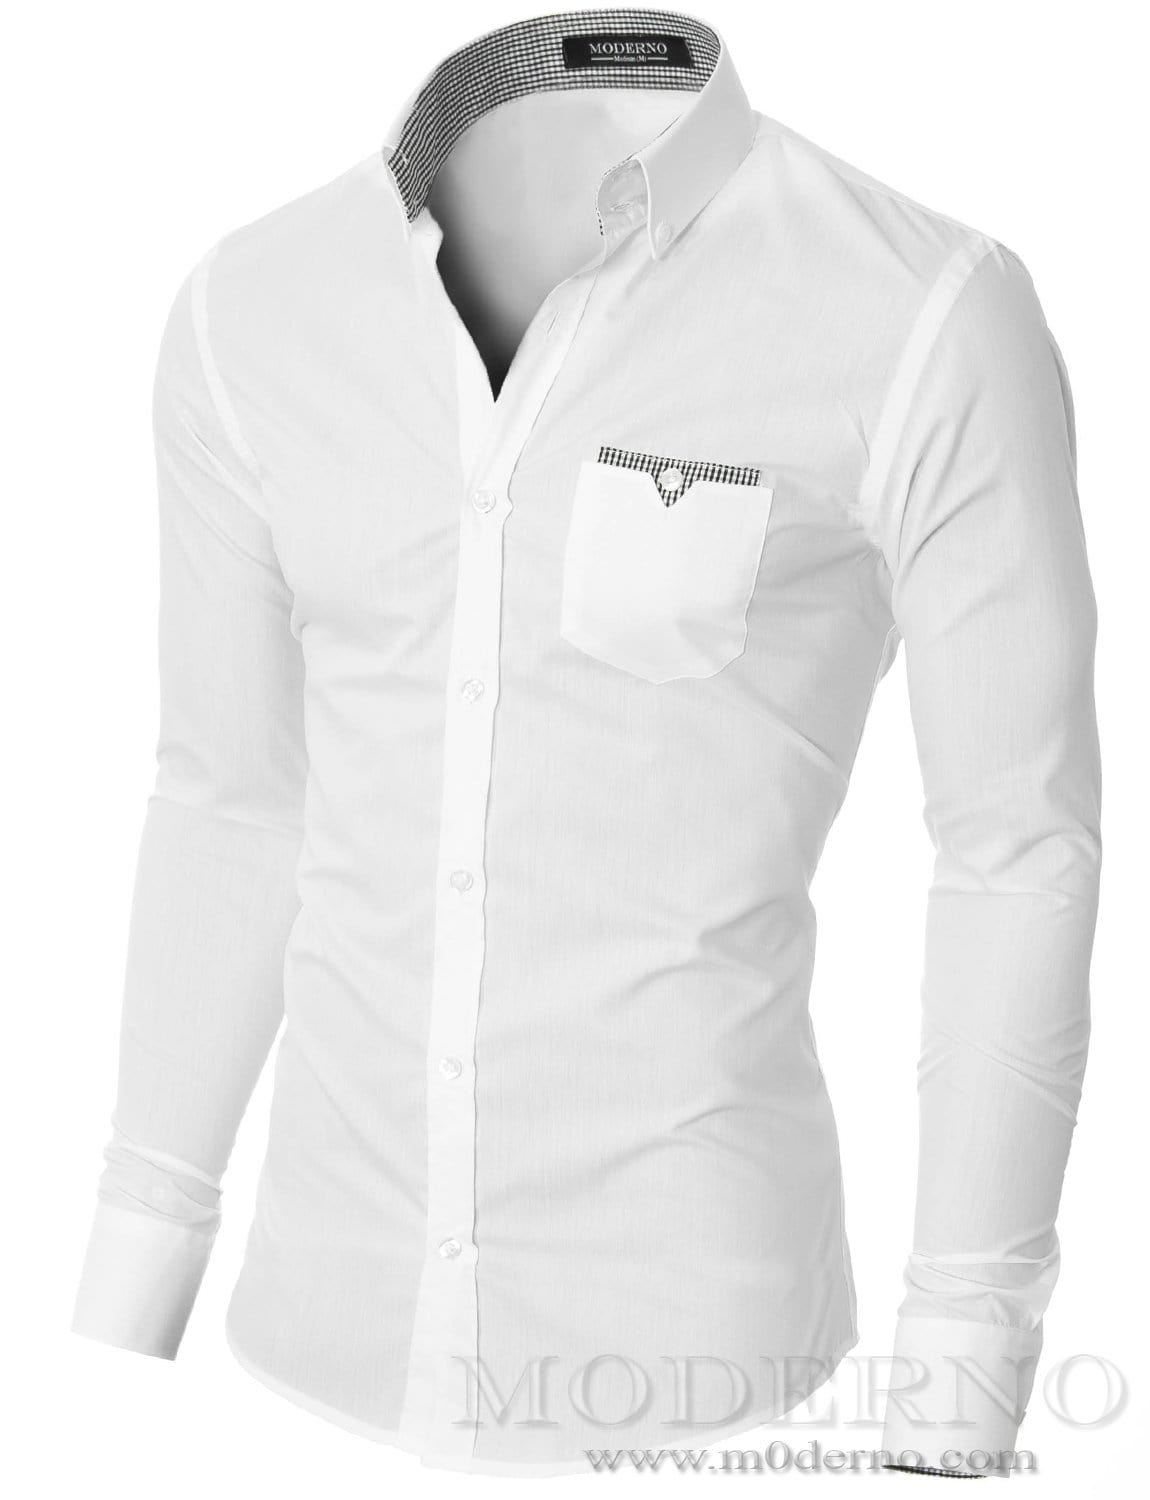 Mens button down white shirt with one pocket by moderno for White button down shirt mens